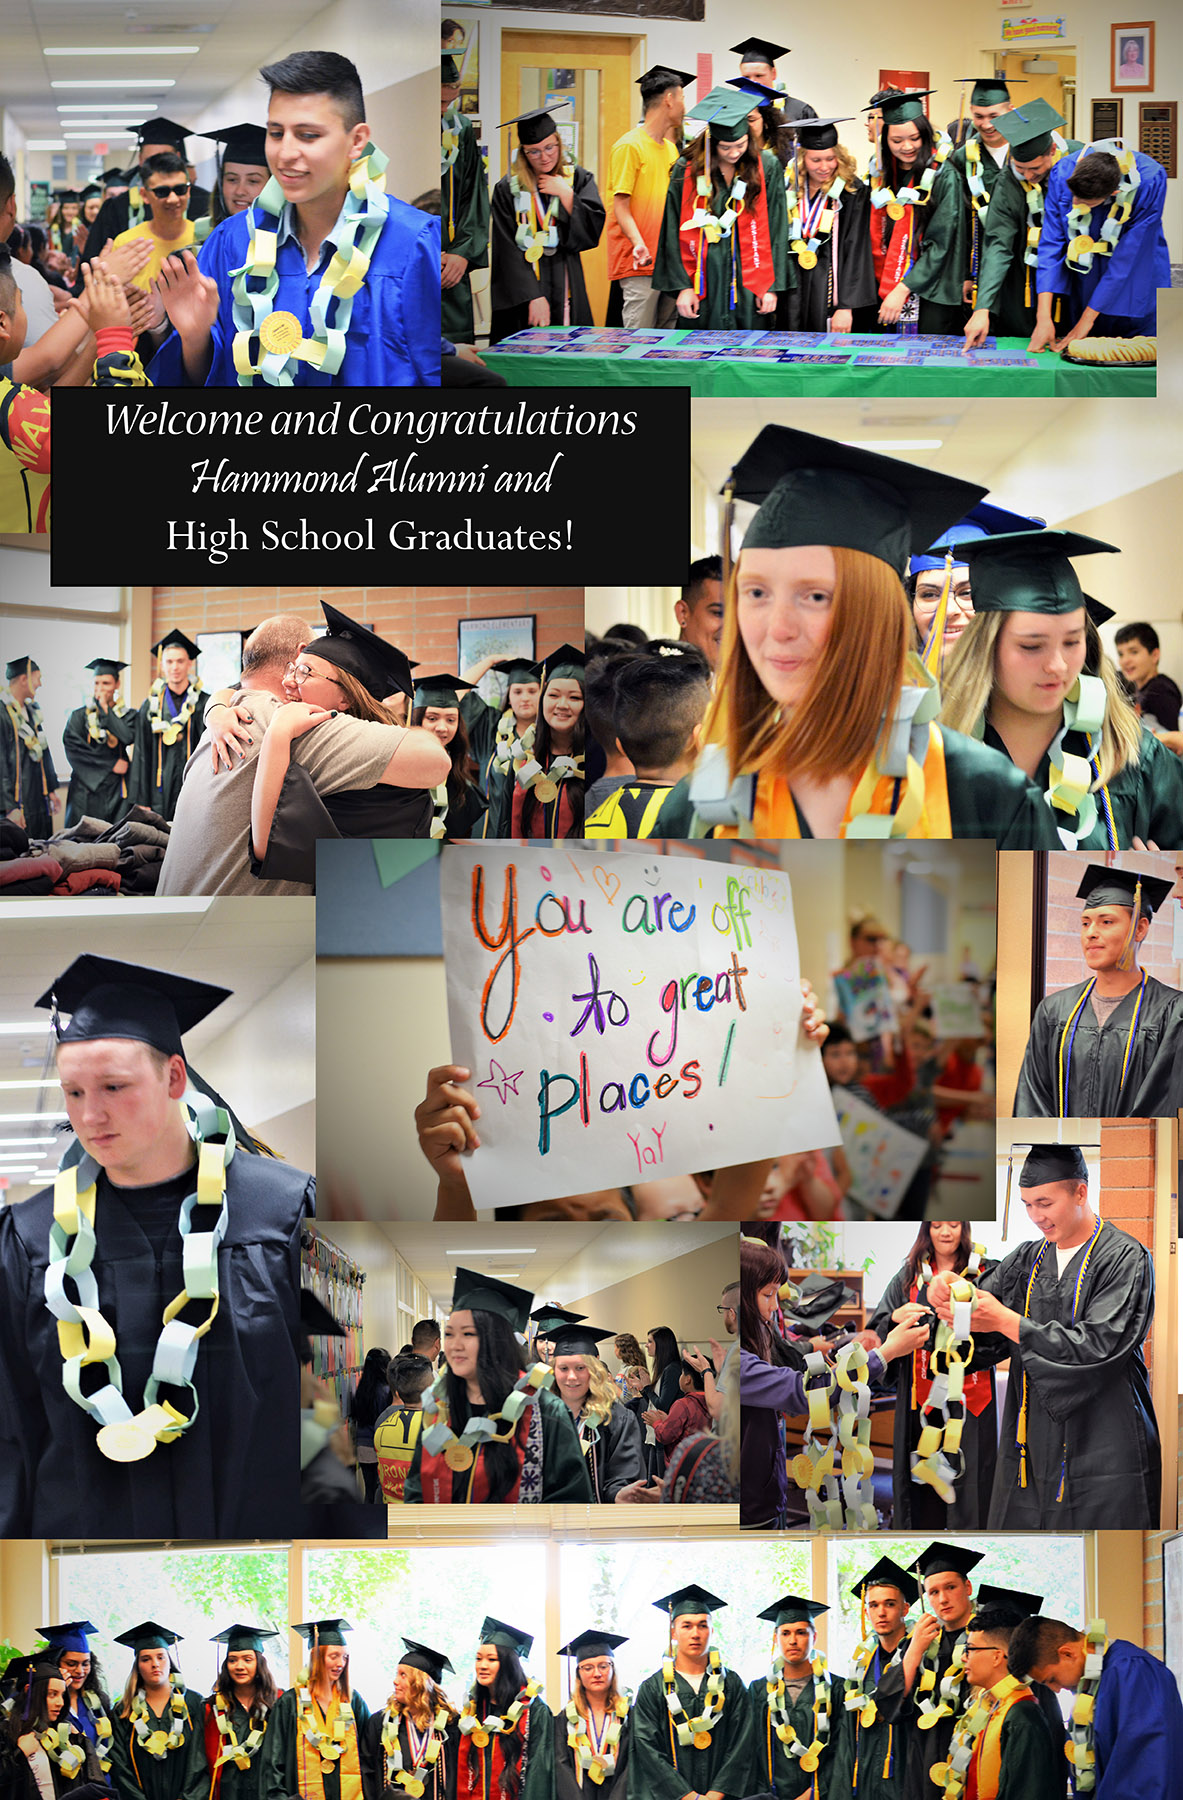 Collage of Hammond alumni high school graduates